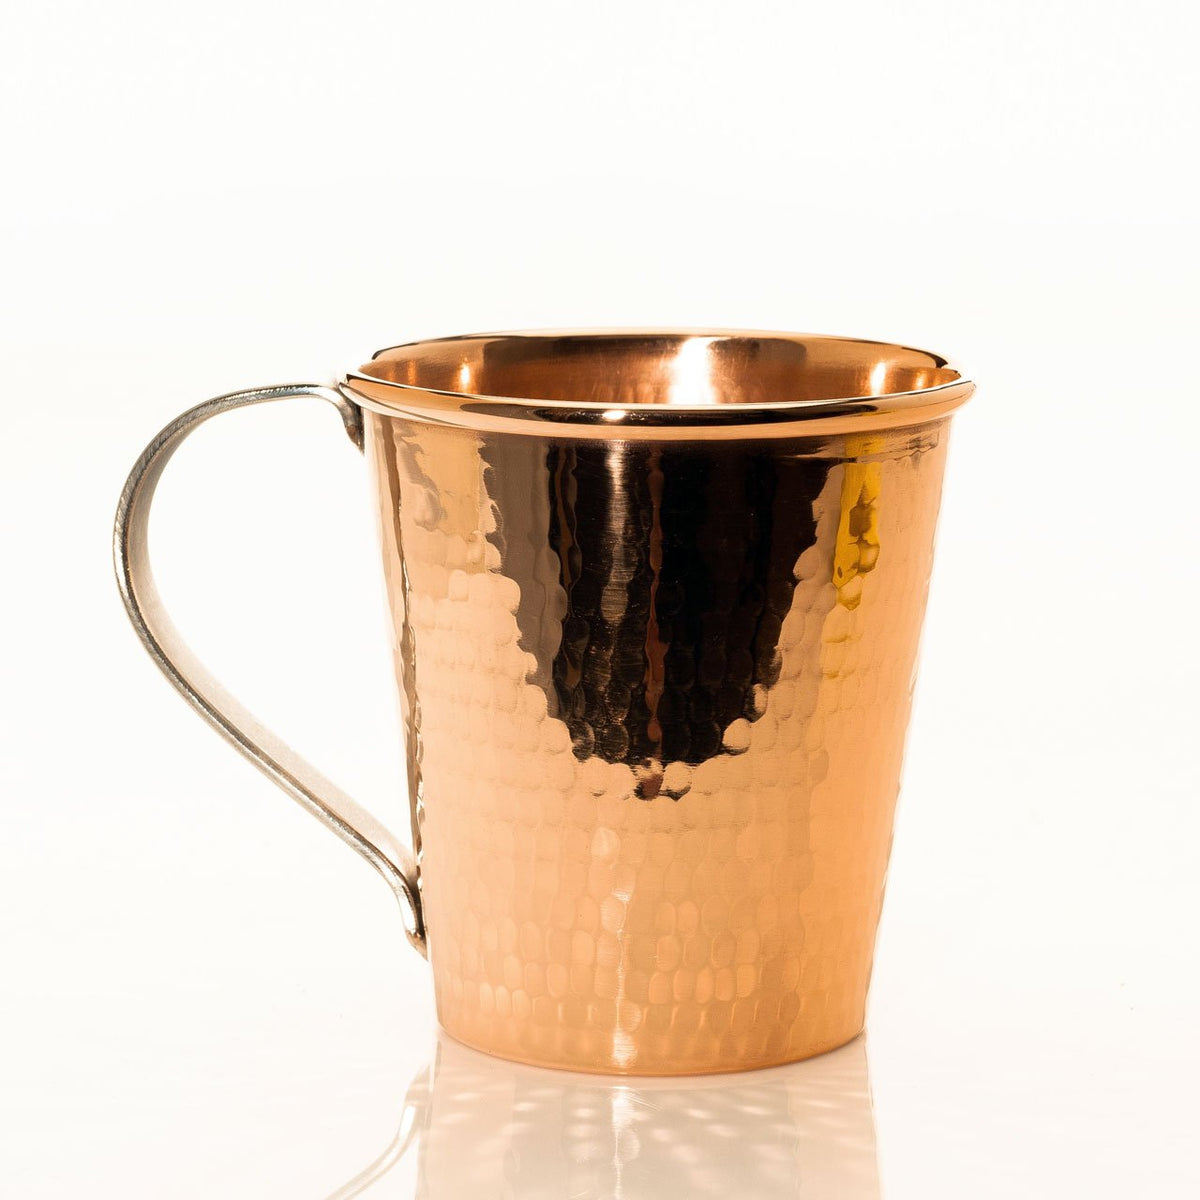 Pure Copper Moscow Mule Mug, Stainless Steel Handle, 18 oz